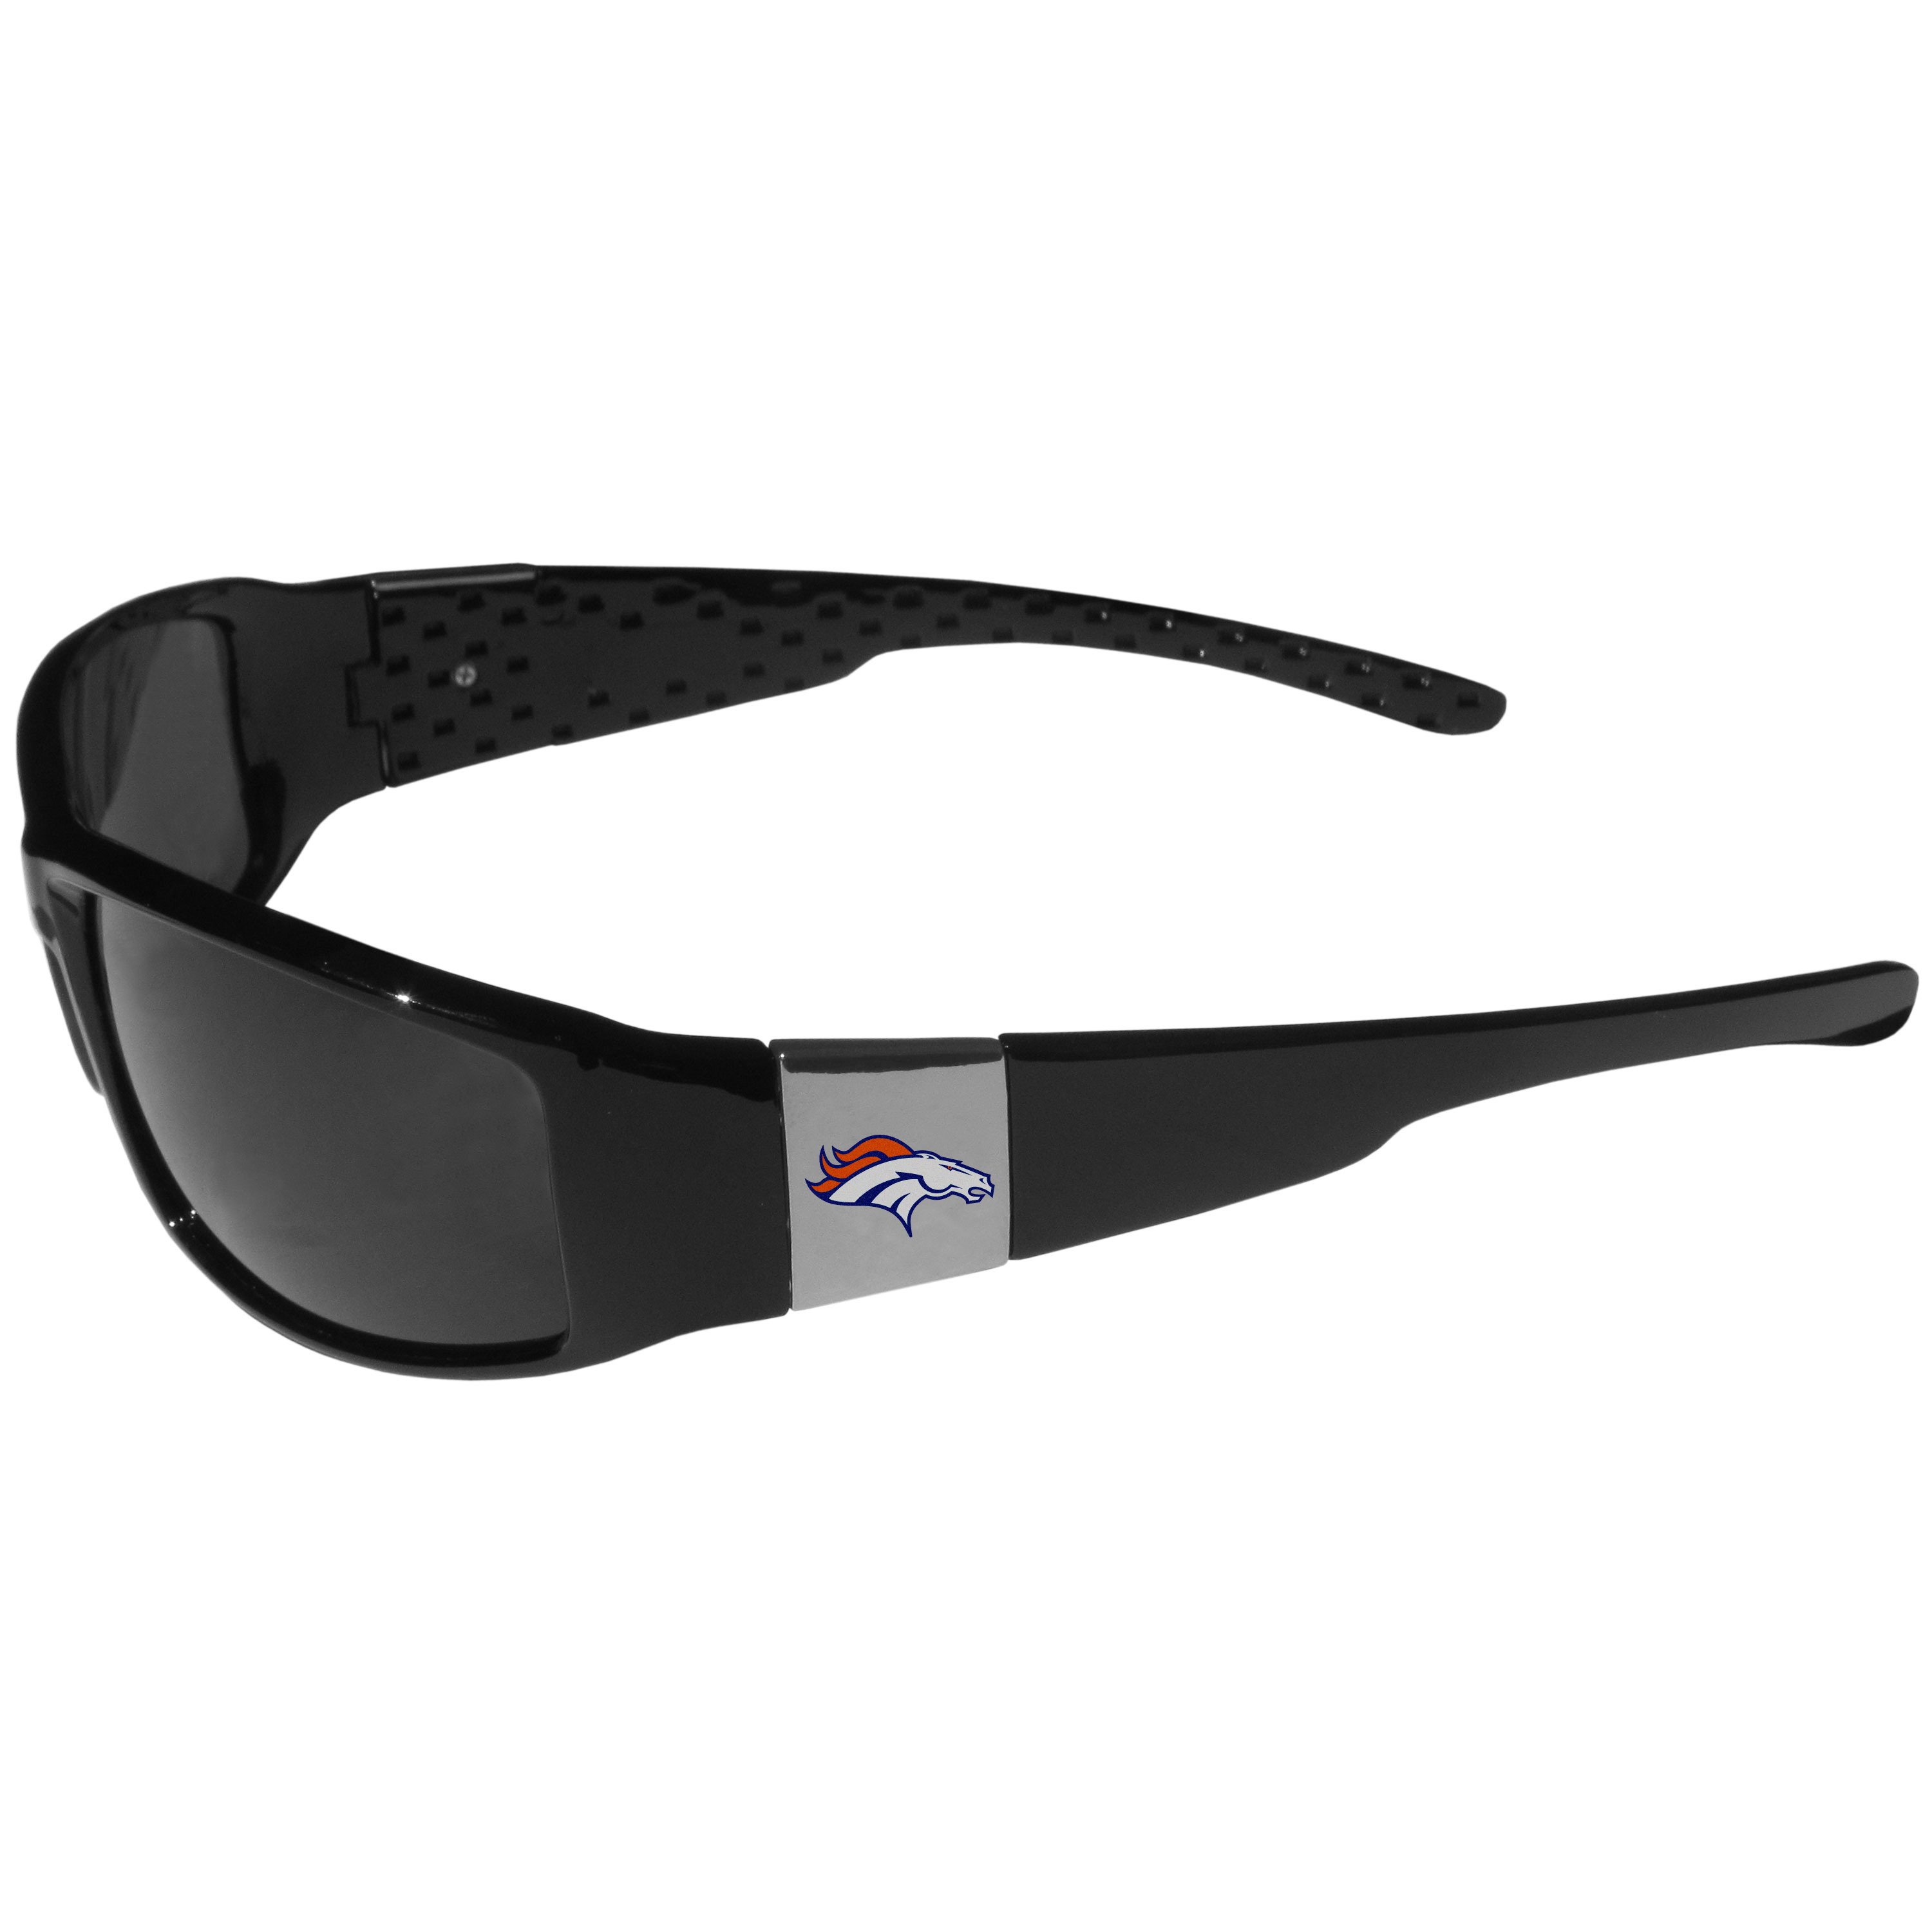 Denver Broncos Chrome Wrap Sunglasses - These designer inspired frames have a sleek look in all black with high-polish chrome Denver Broncos shields on each arm with a printed logo. The shades are perfect for any outdoor activity like; golfing, driving, hiking, fishing or cheering on the team at a tailgating event or at a home game day BBQ with a lens rating of 100% UVA/UVB for maximum UV protection. The high-quality frames are as durable as they are fashionable and with their classic look they are the perfect fan accessory that can be worn everyday for every occasion.